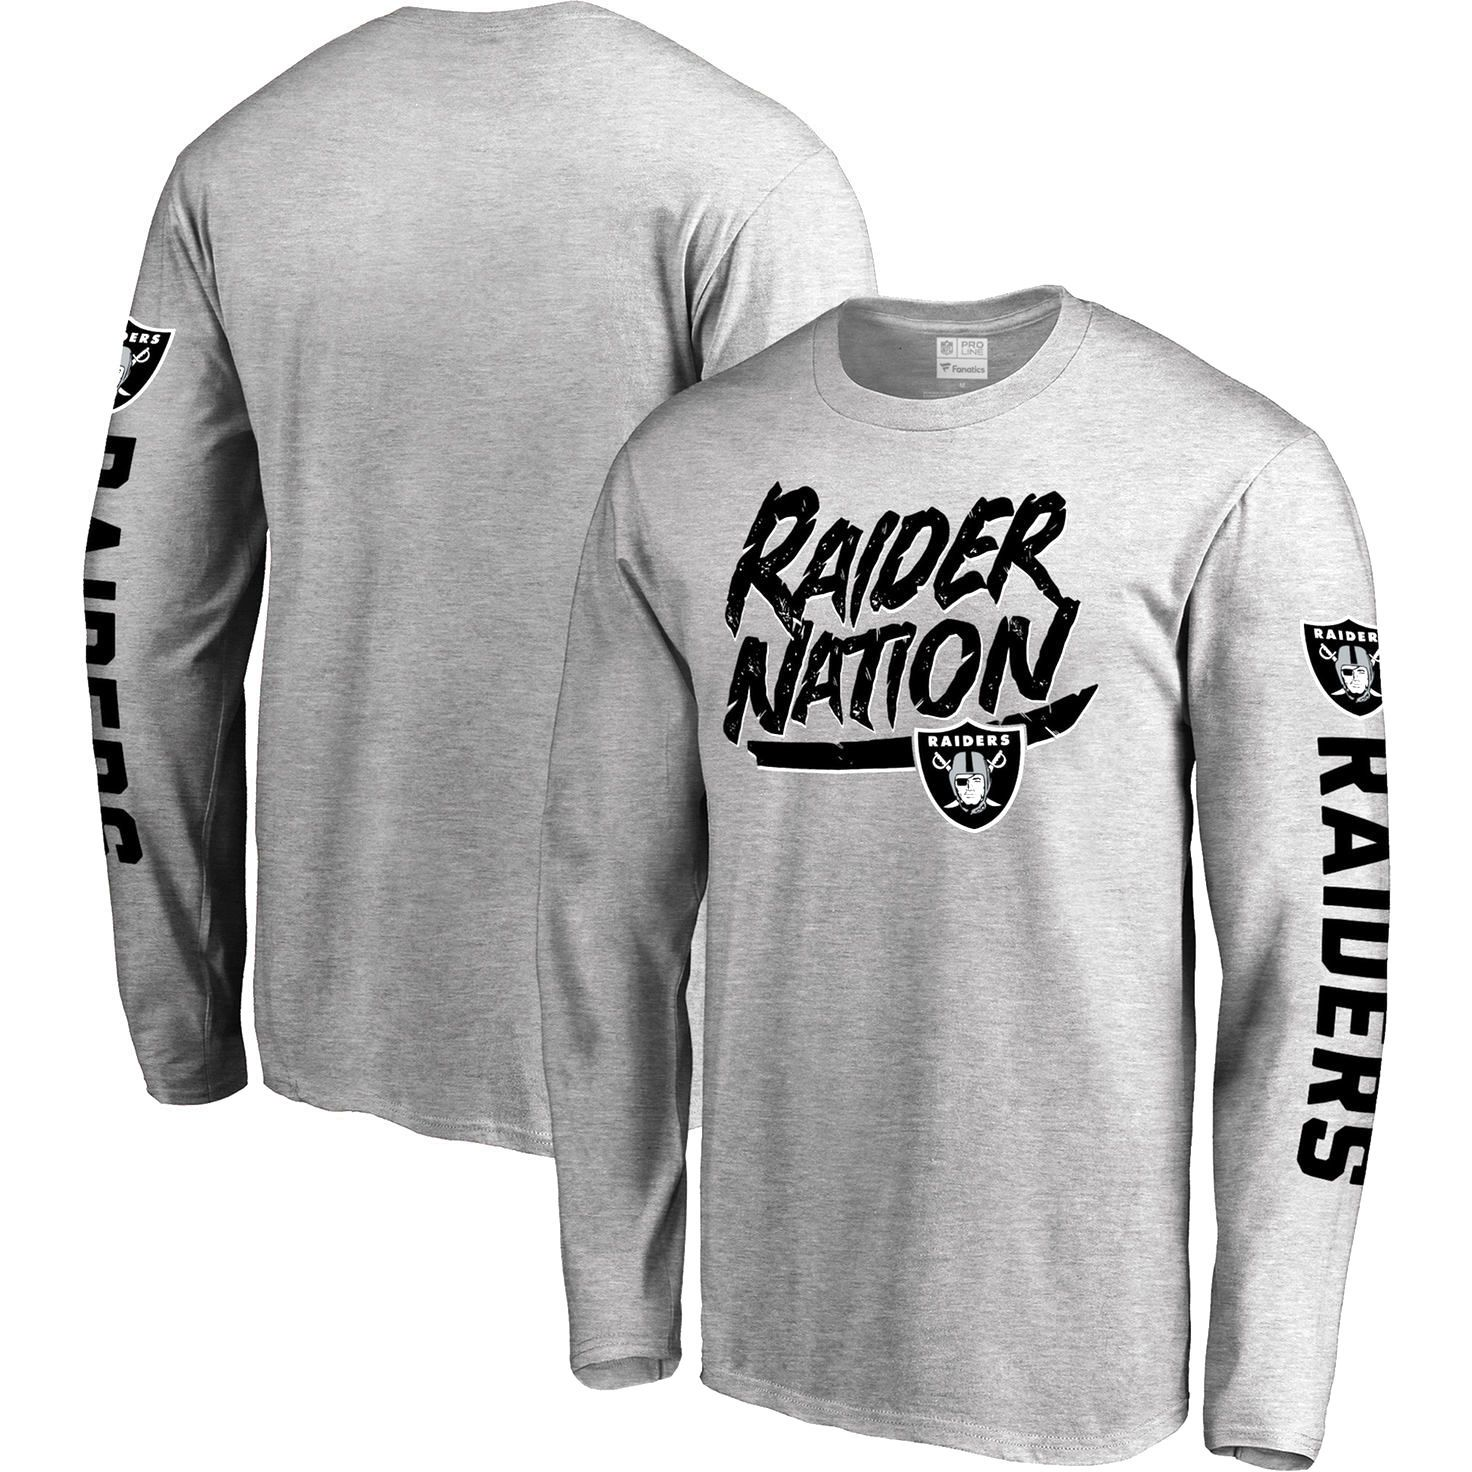 Oakland Raiders Pro Line Hometown Collection Long Sleeve T-Shirt -  Heathered Gray -  25.59 55dc43780